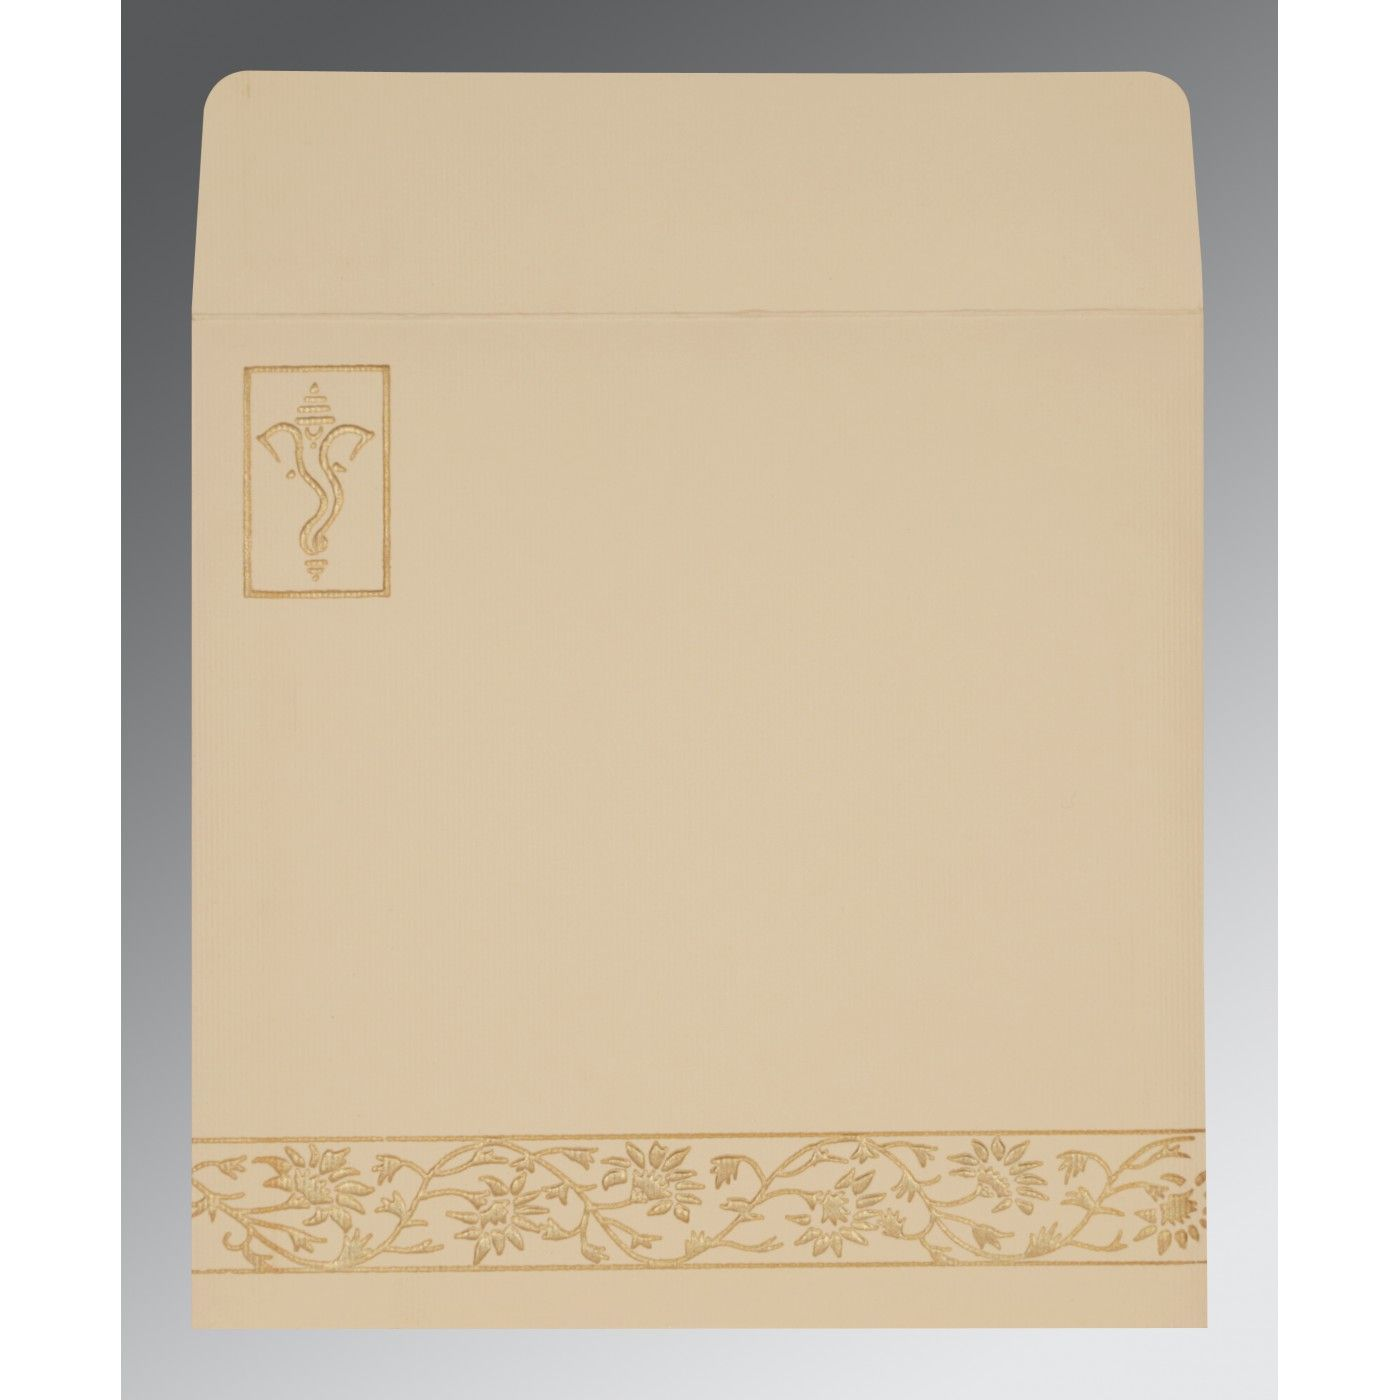 MANGO YELLOW HANDMADE SHIMMER EMBOSSED WEDDING INVITATION : CW-2178 - IndianWeddingCards